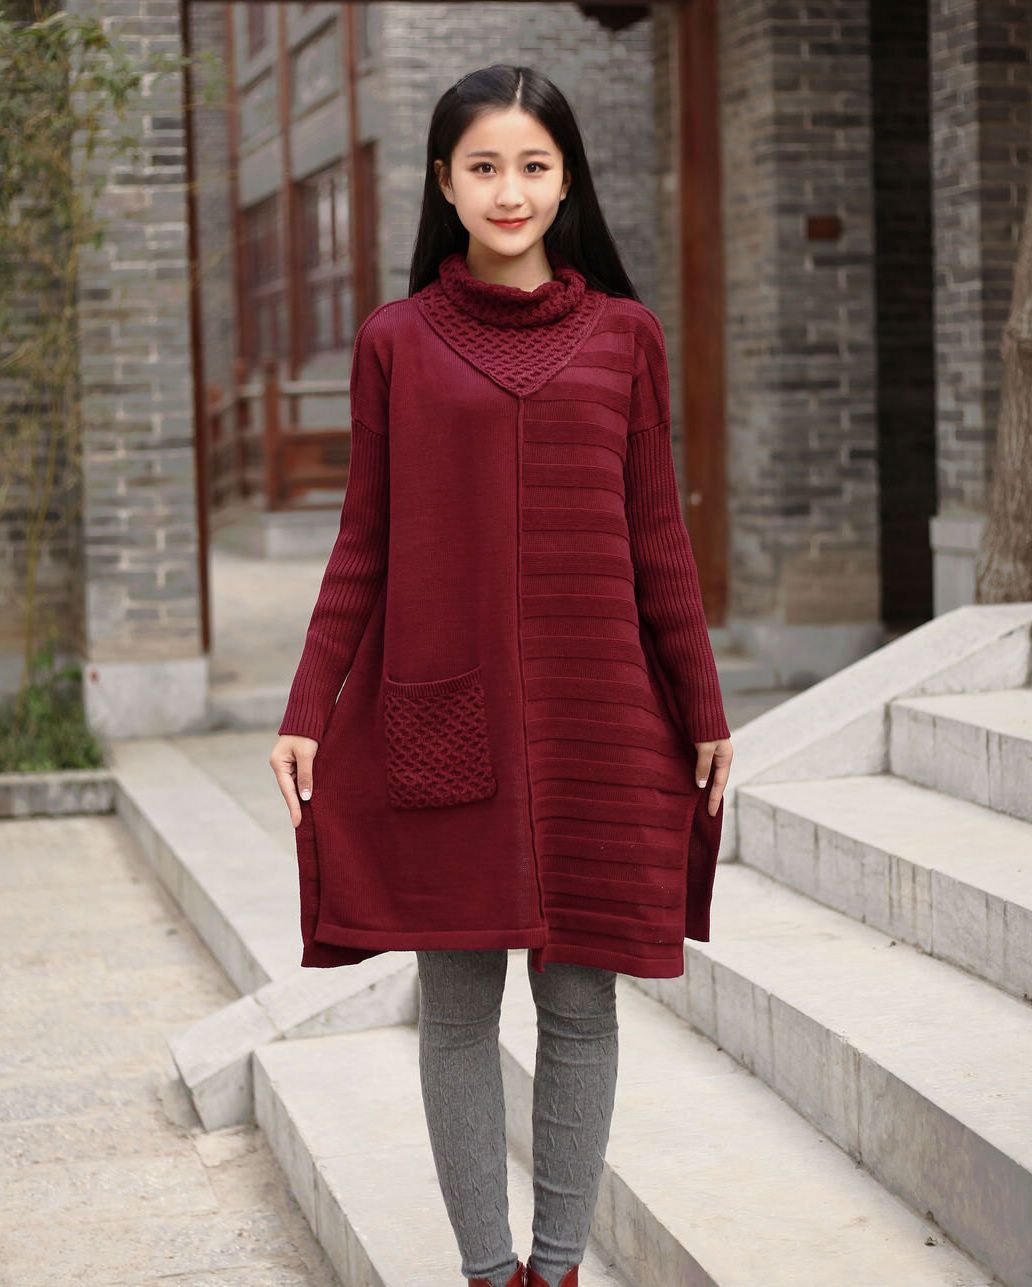 Winter sweater dresses for women